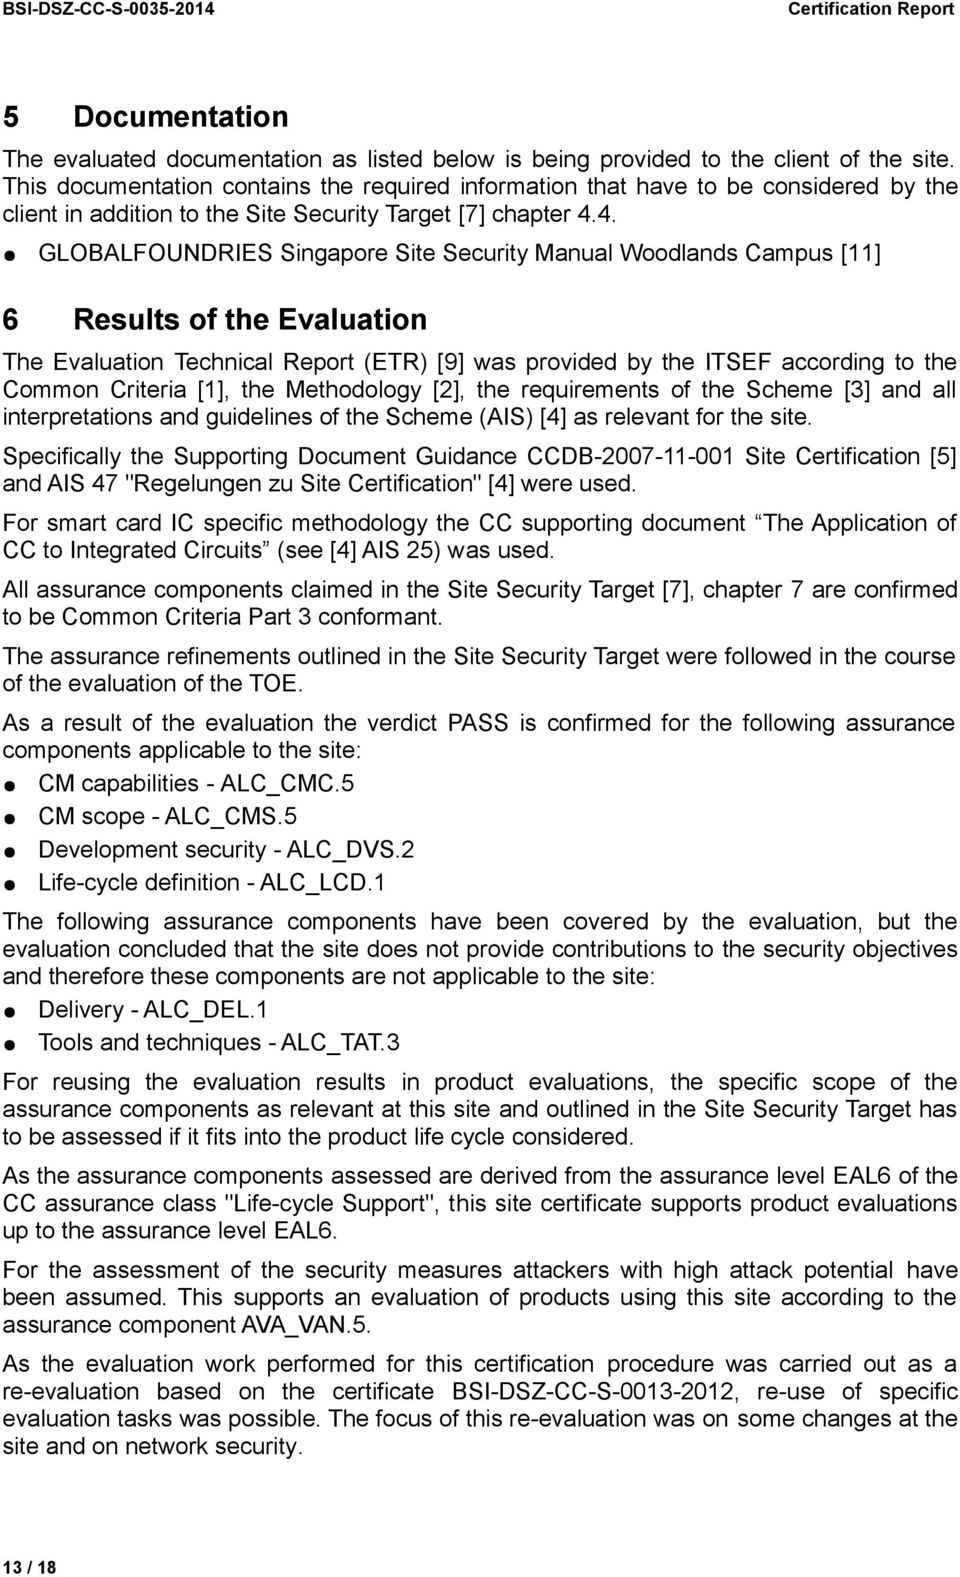 4. GLOBALFOUNDRIES Singapore Site Security Manual Woodlands Campus [11] 6 Results of the Evaluation The Evaluation Technical Report (ETR) [9] was provided by the ITSEF according to the Common